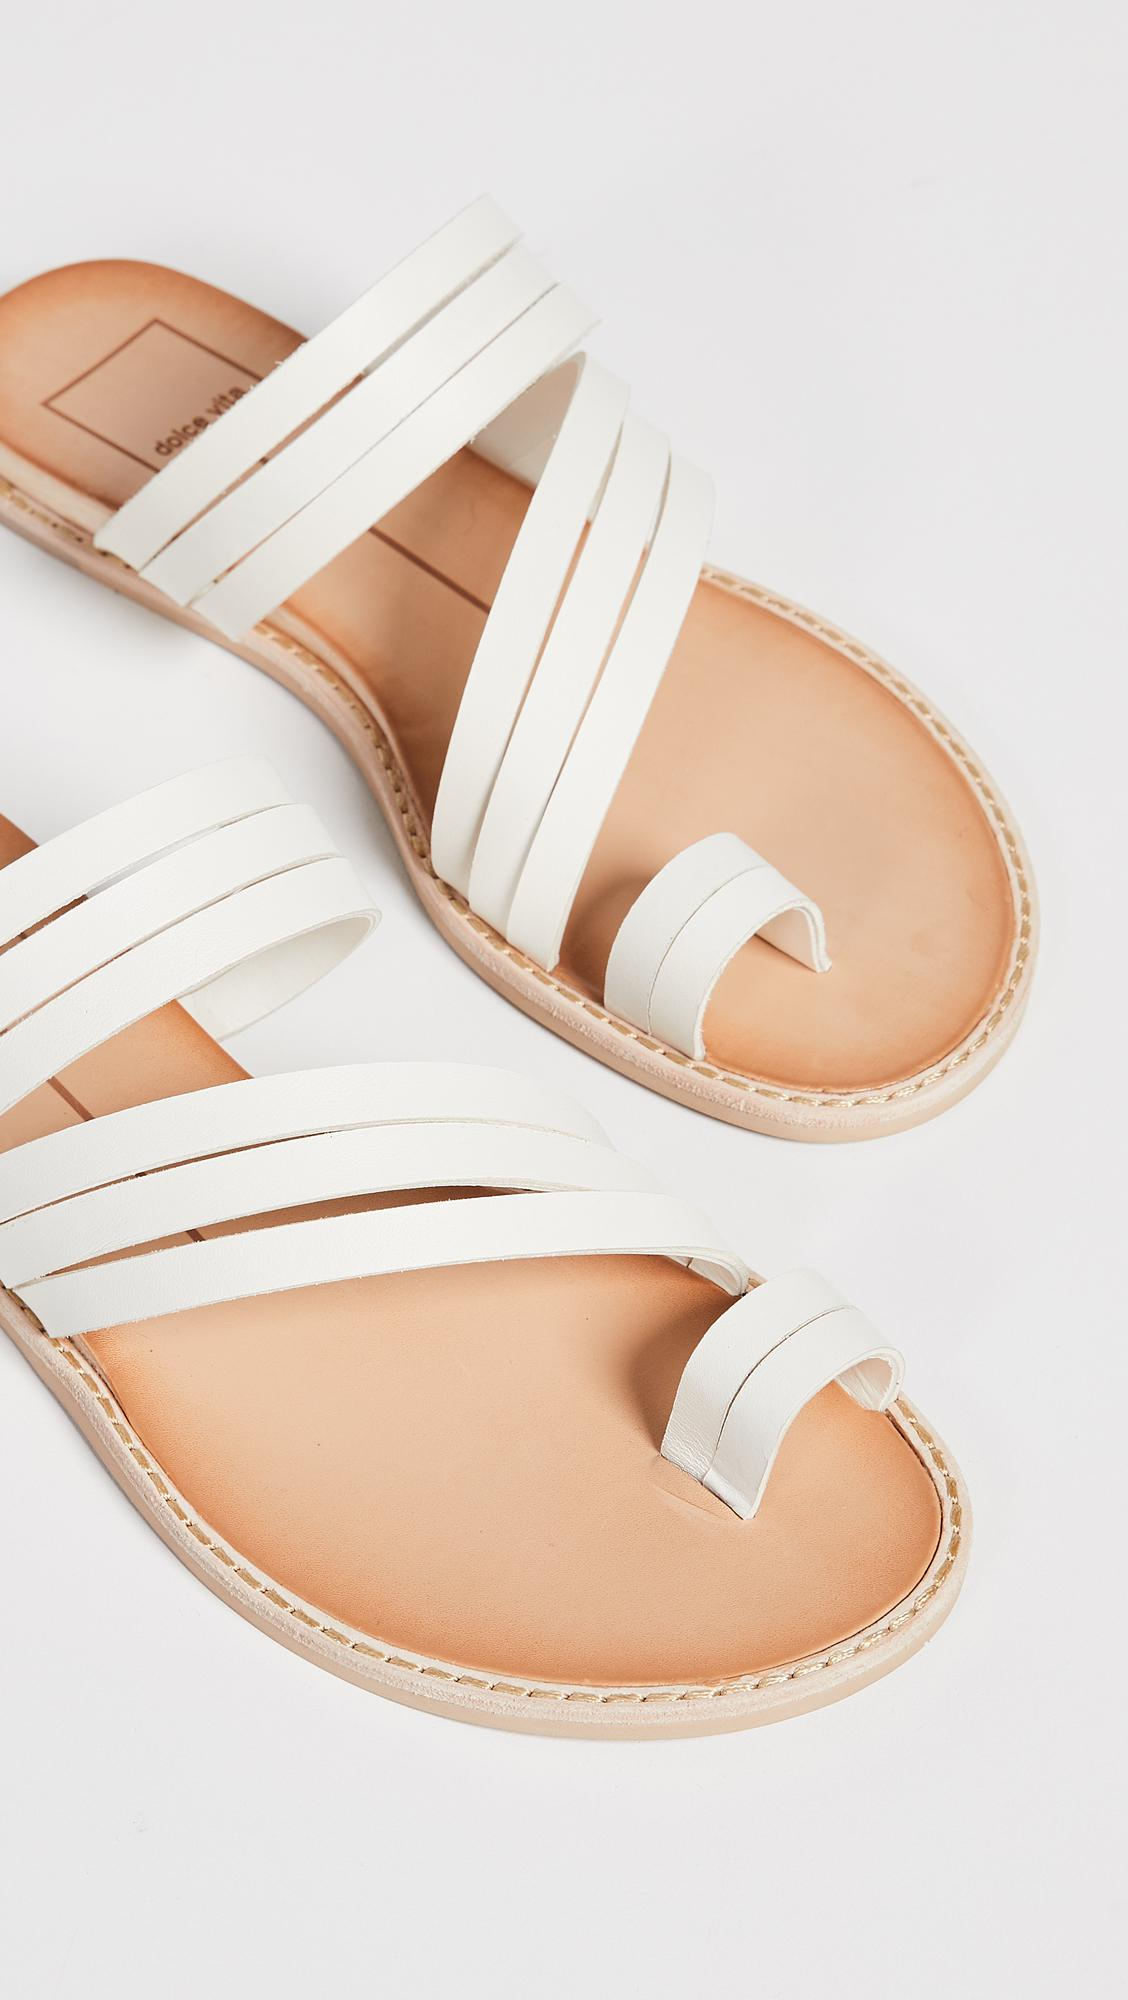 ed5ac73676f15 Lyst - Dolce Vita Nelly Toe Ring Slides in White